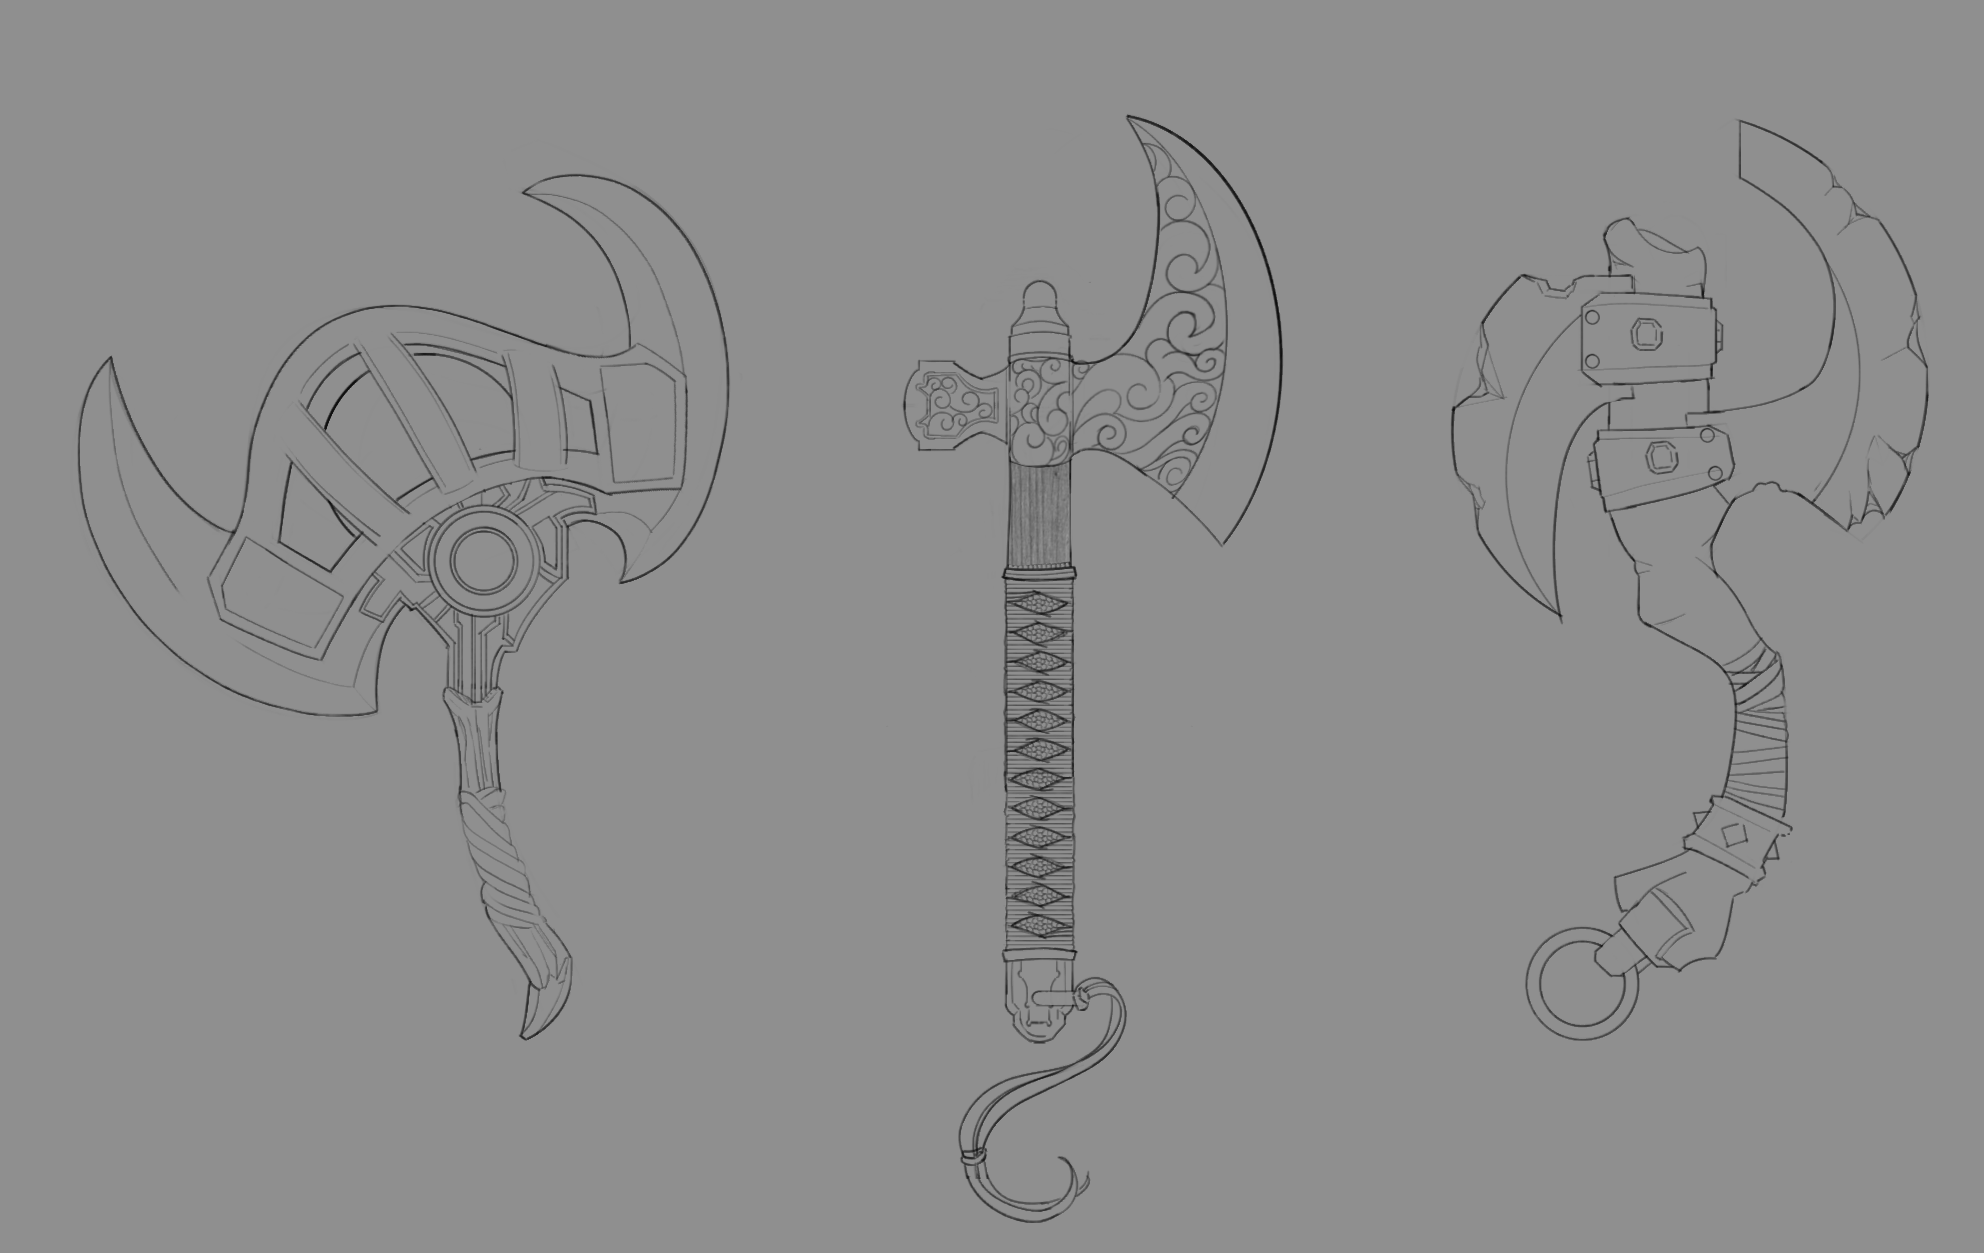 ENDED] Sketchfab Sculpting Challenge: Battle Axe - Weekly